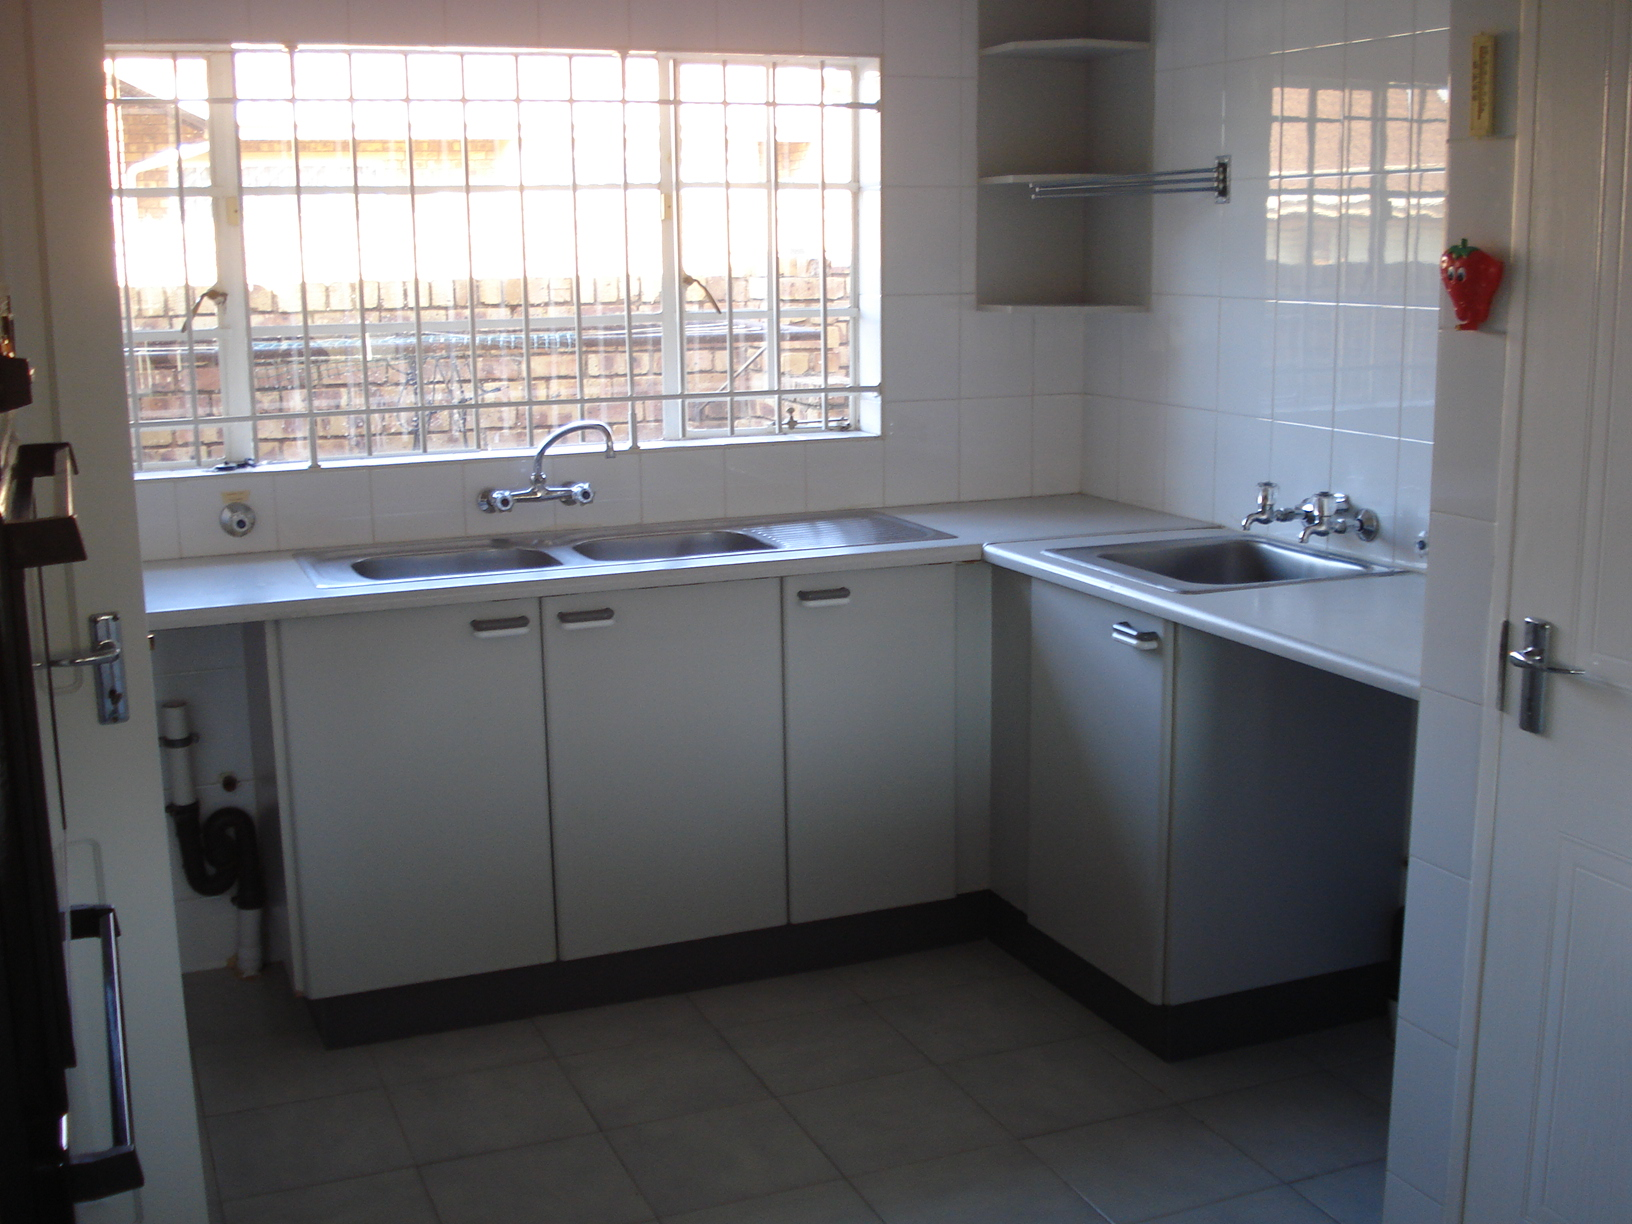 3 Bedroom Townhouse for sale in Glenvista ENT0029734 : photo#1